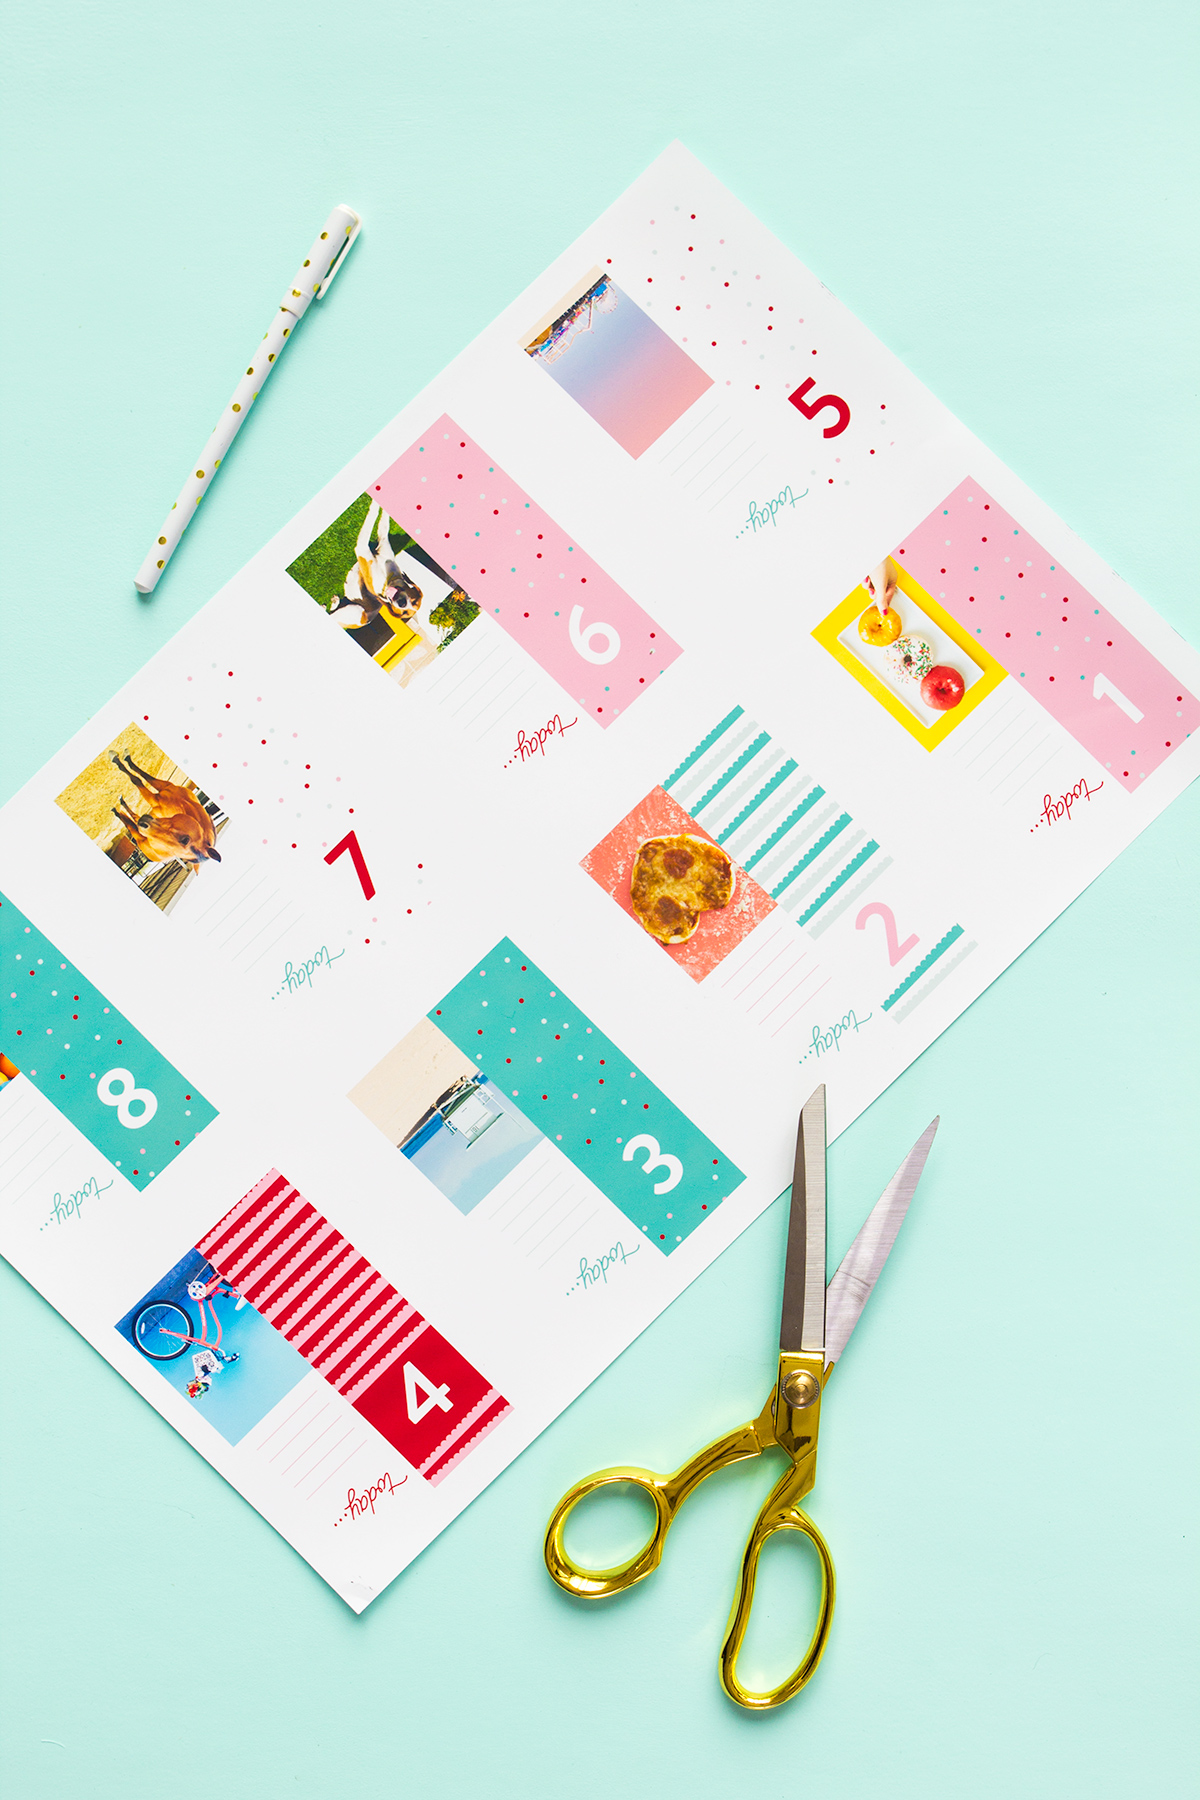 Add your own photos to make a one-of-a-kind advent calendar this Christmas season!